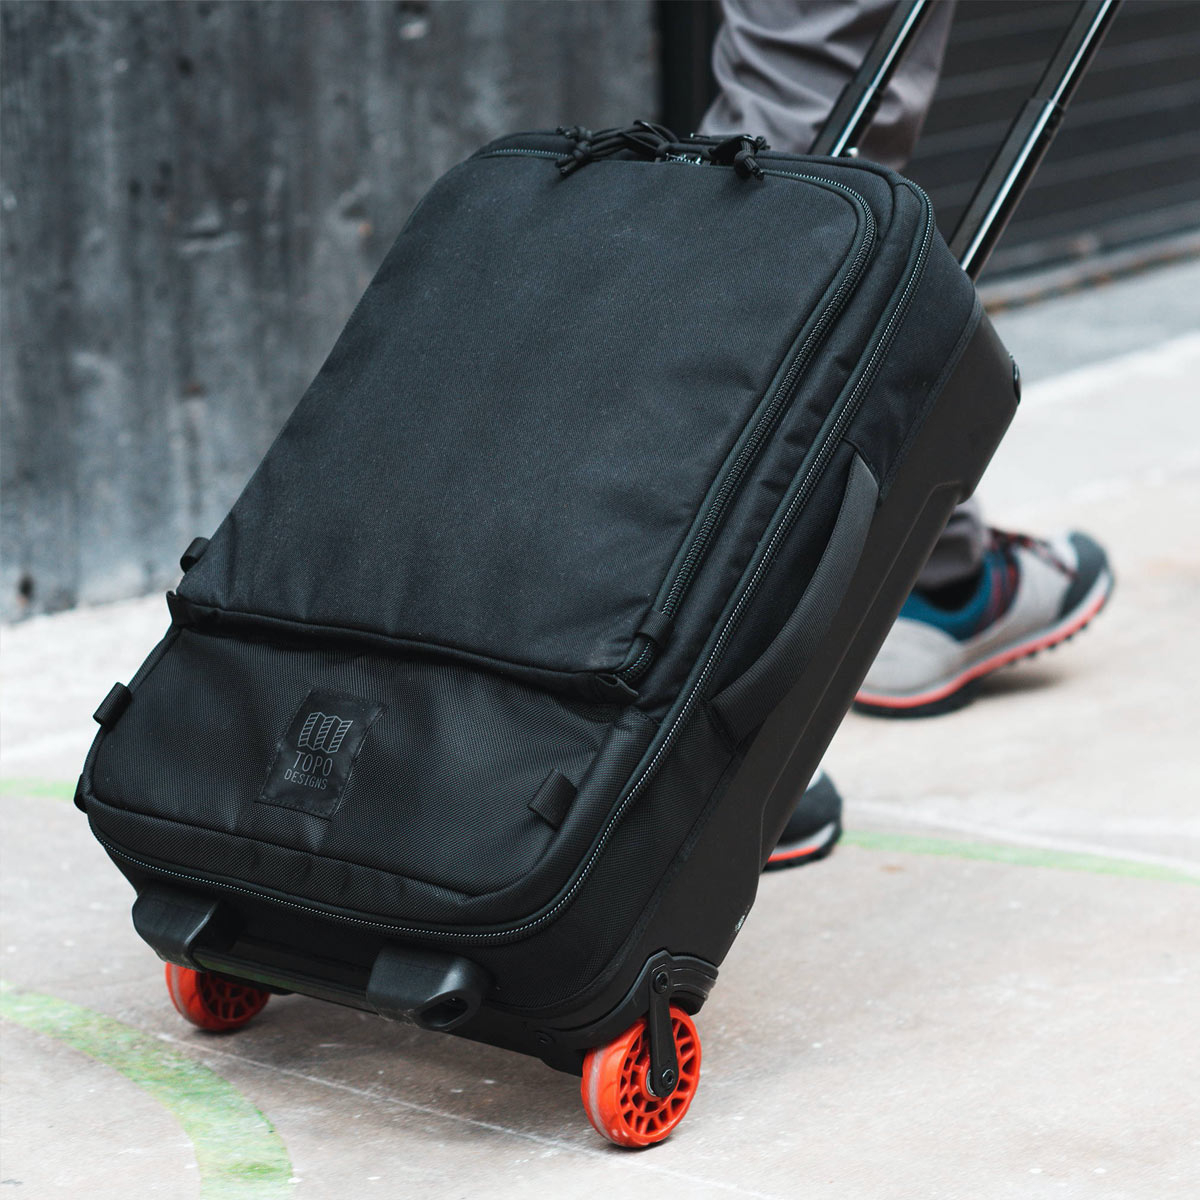 Topo Designs Travel Bag Roller Premium Black, carry-on friendly size and the 3-way carry ensures a smooth trip